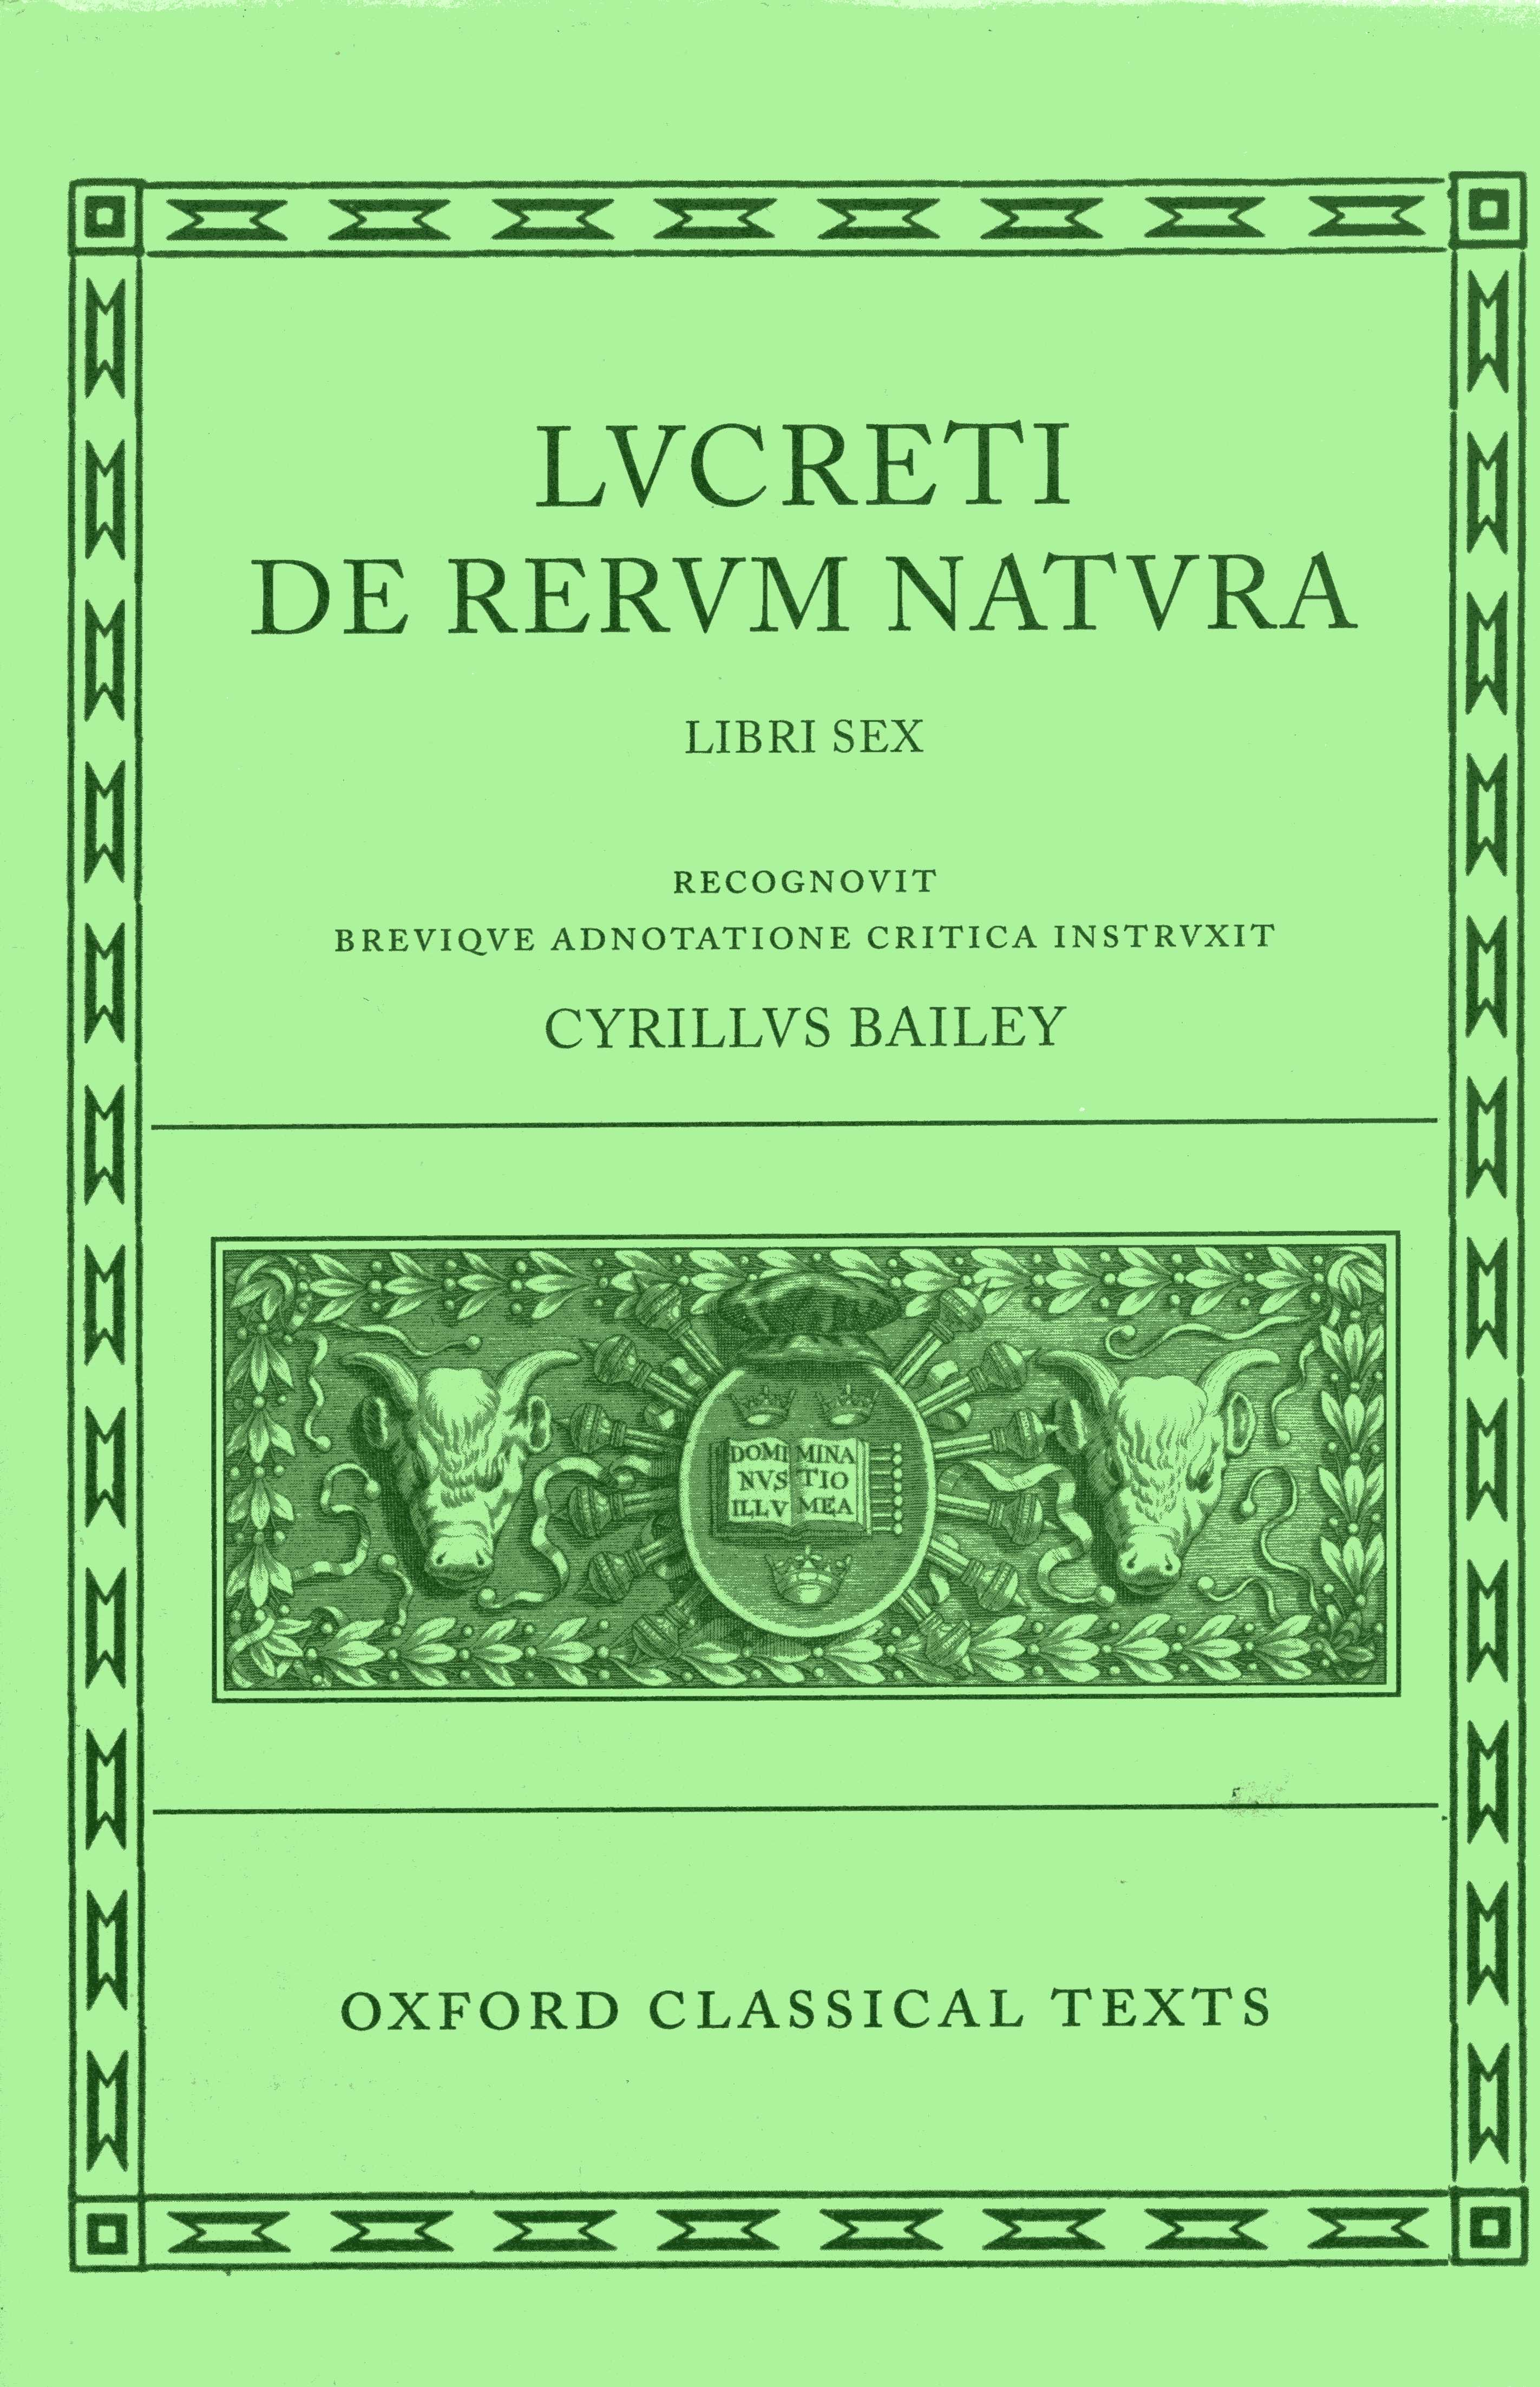 Oxford Classical Texts: Lucreti: De Rerum Natura: Libri Sex (Second Edition)Libri Sex